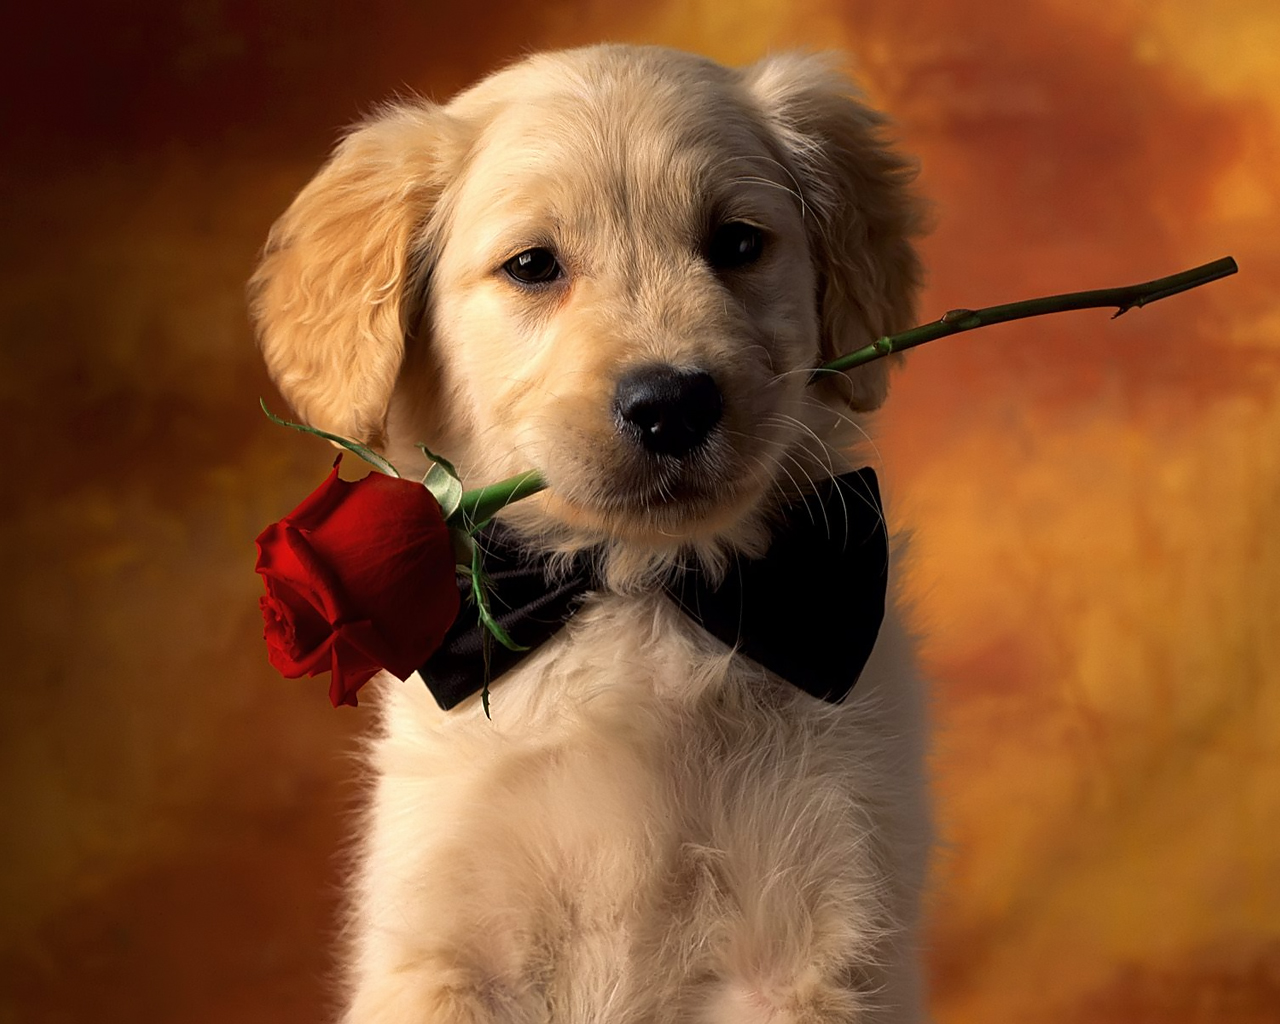 Dog and Red Rose Flower Dog Wallpapers Backgrounds | Dogs Wallpapers Backgrounds